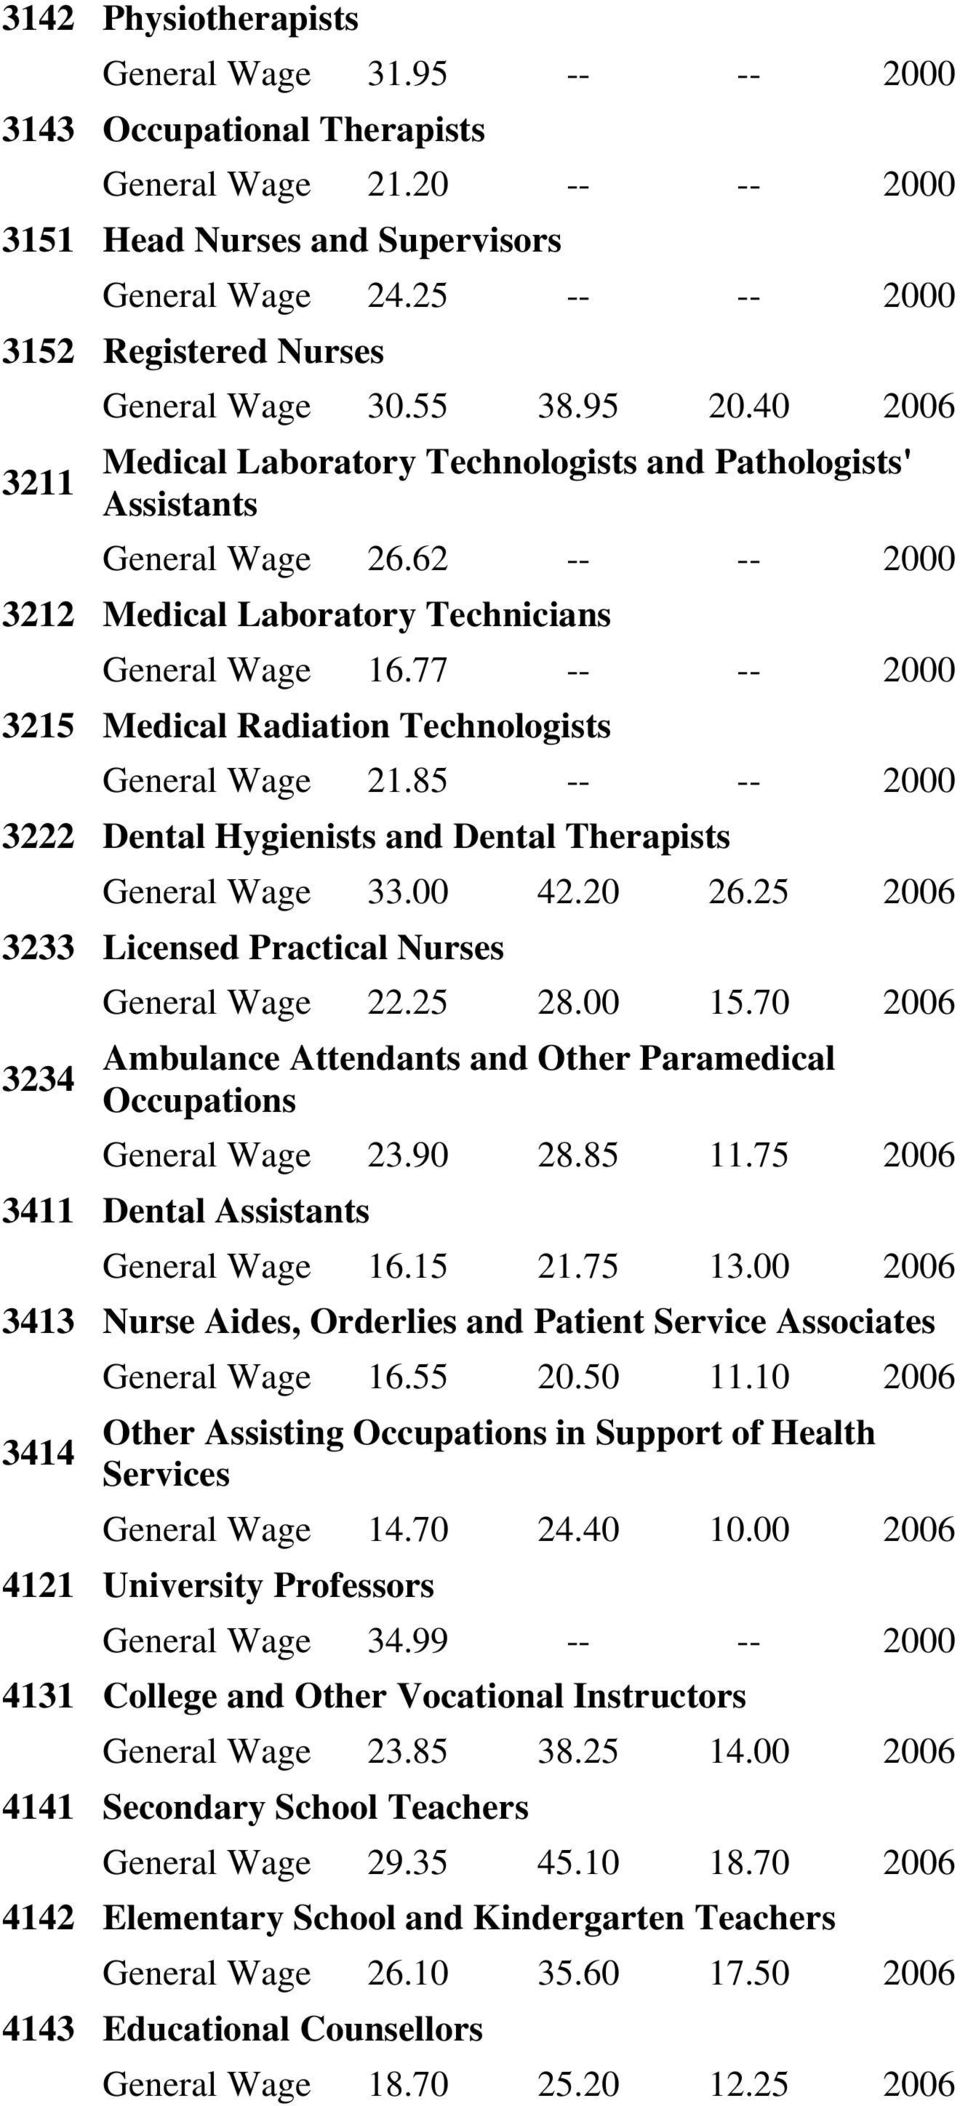 62 -- -- 2000 3212 Medical Laboratory Technicians General Wage 16.77 -- -- 2000 3215 Medical Radiation Technologists General Wage 21.